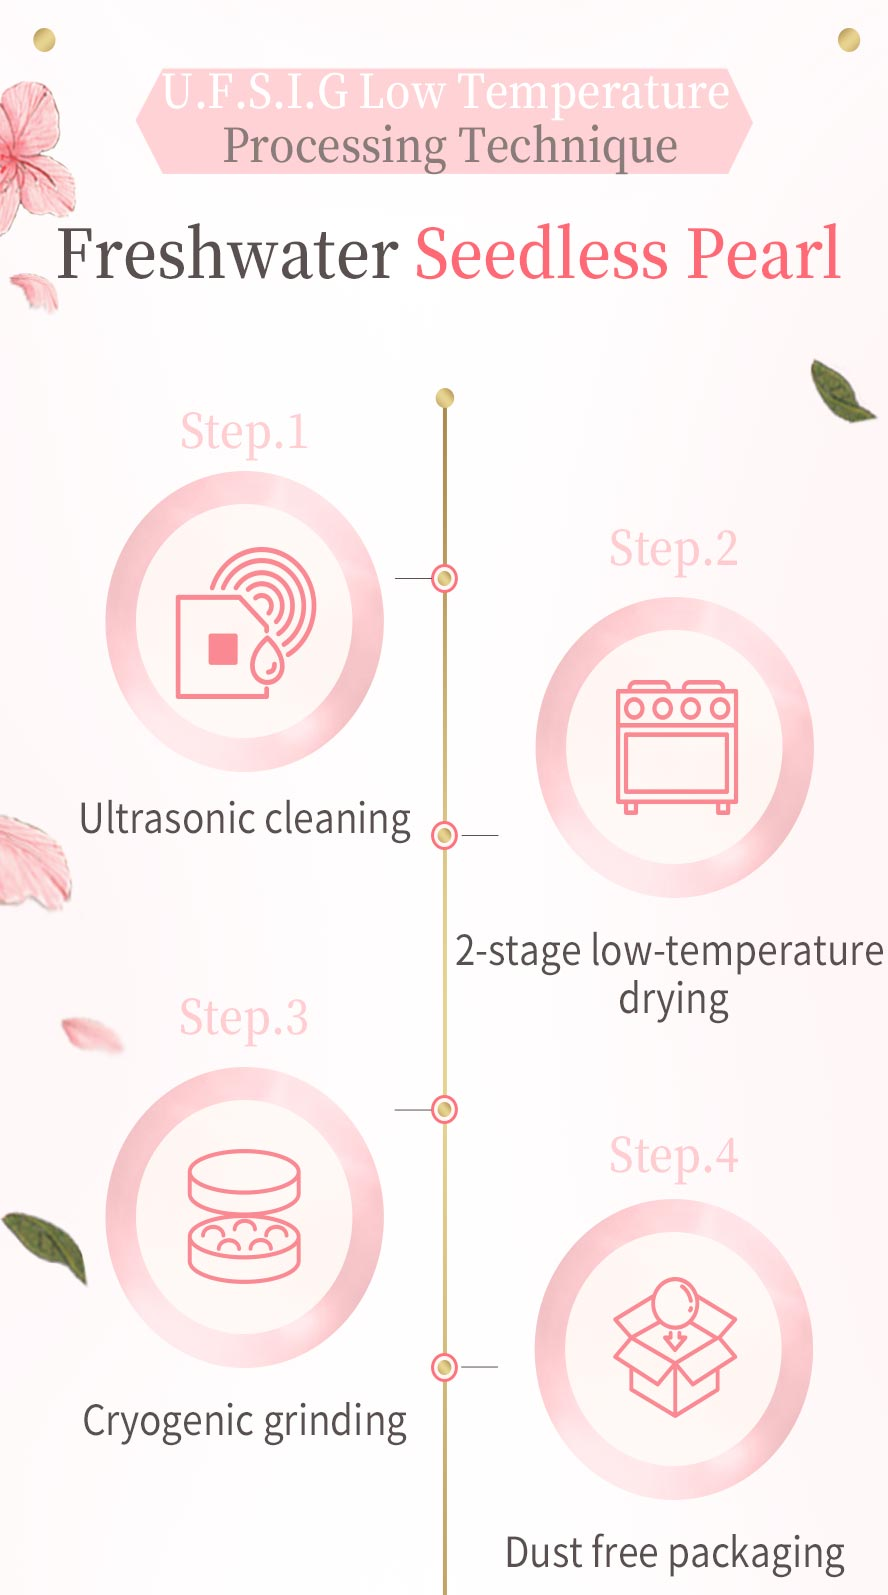 U.F.S.I.G low temperature processing technique to preserve pearl protein completely, BHKs amount of pearl protein is 2-3 times than others.